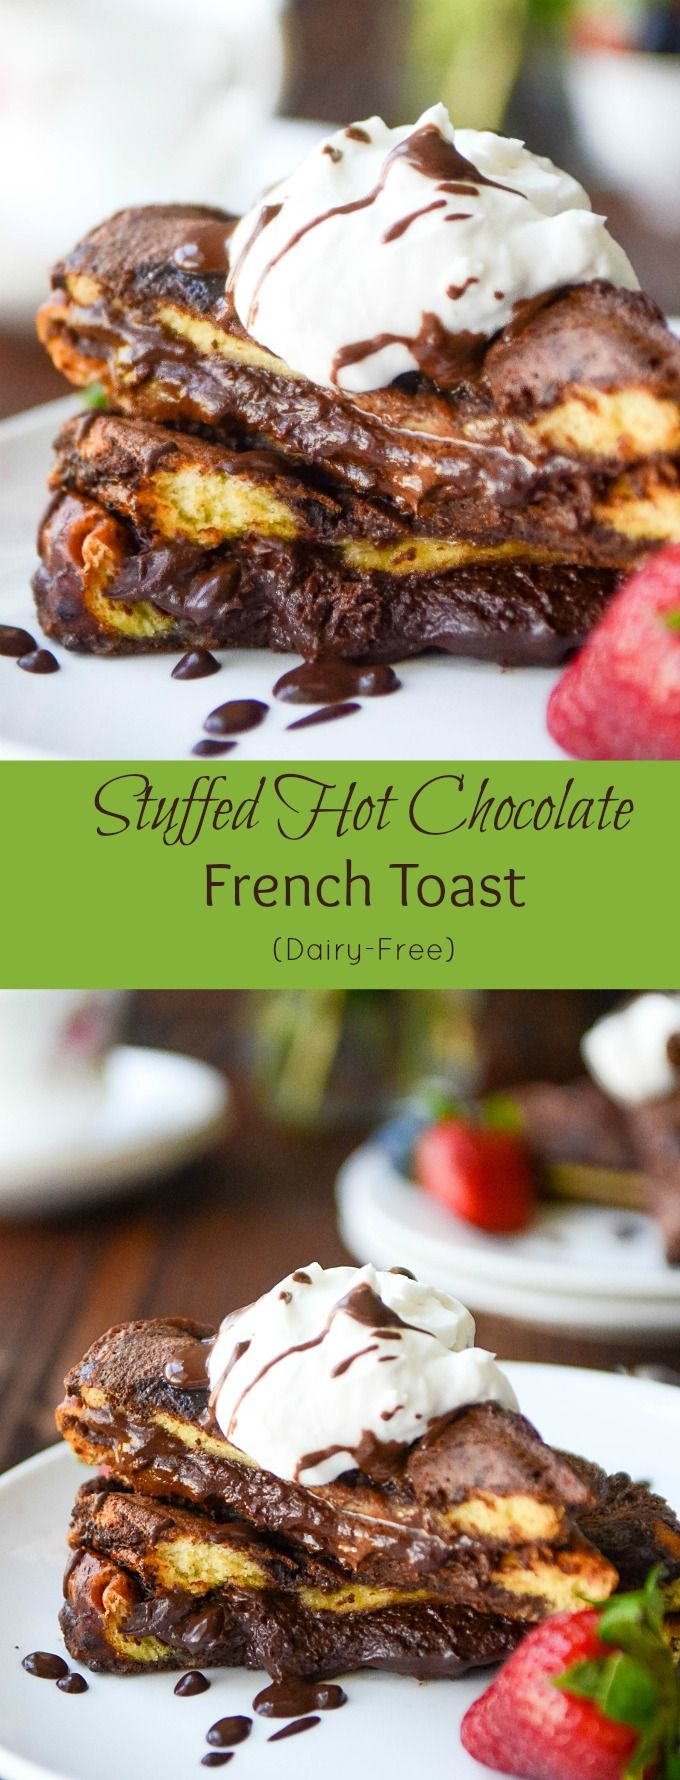 Stuffed Hot Chocolate French Toast (Dairy-Free) via @https://www.pinterest.com/lavenderandmcrn/